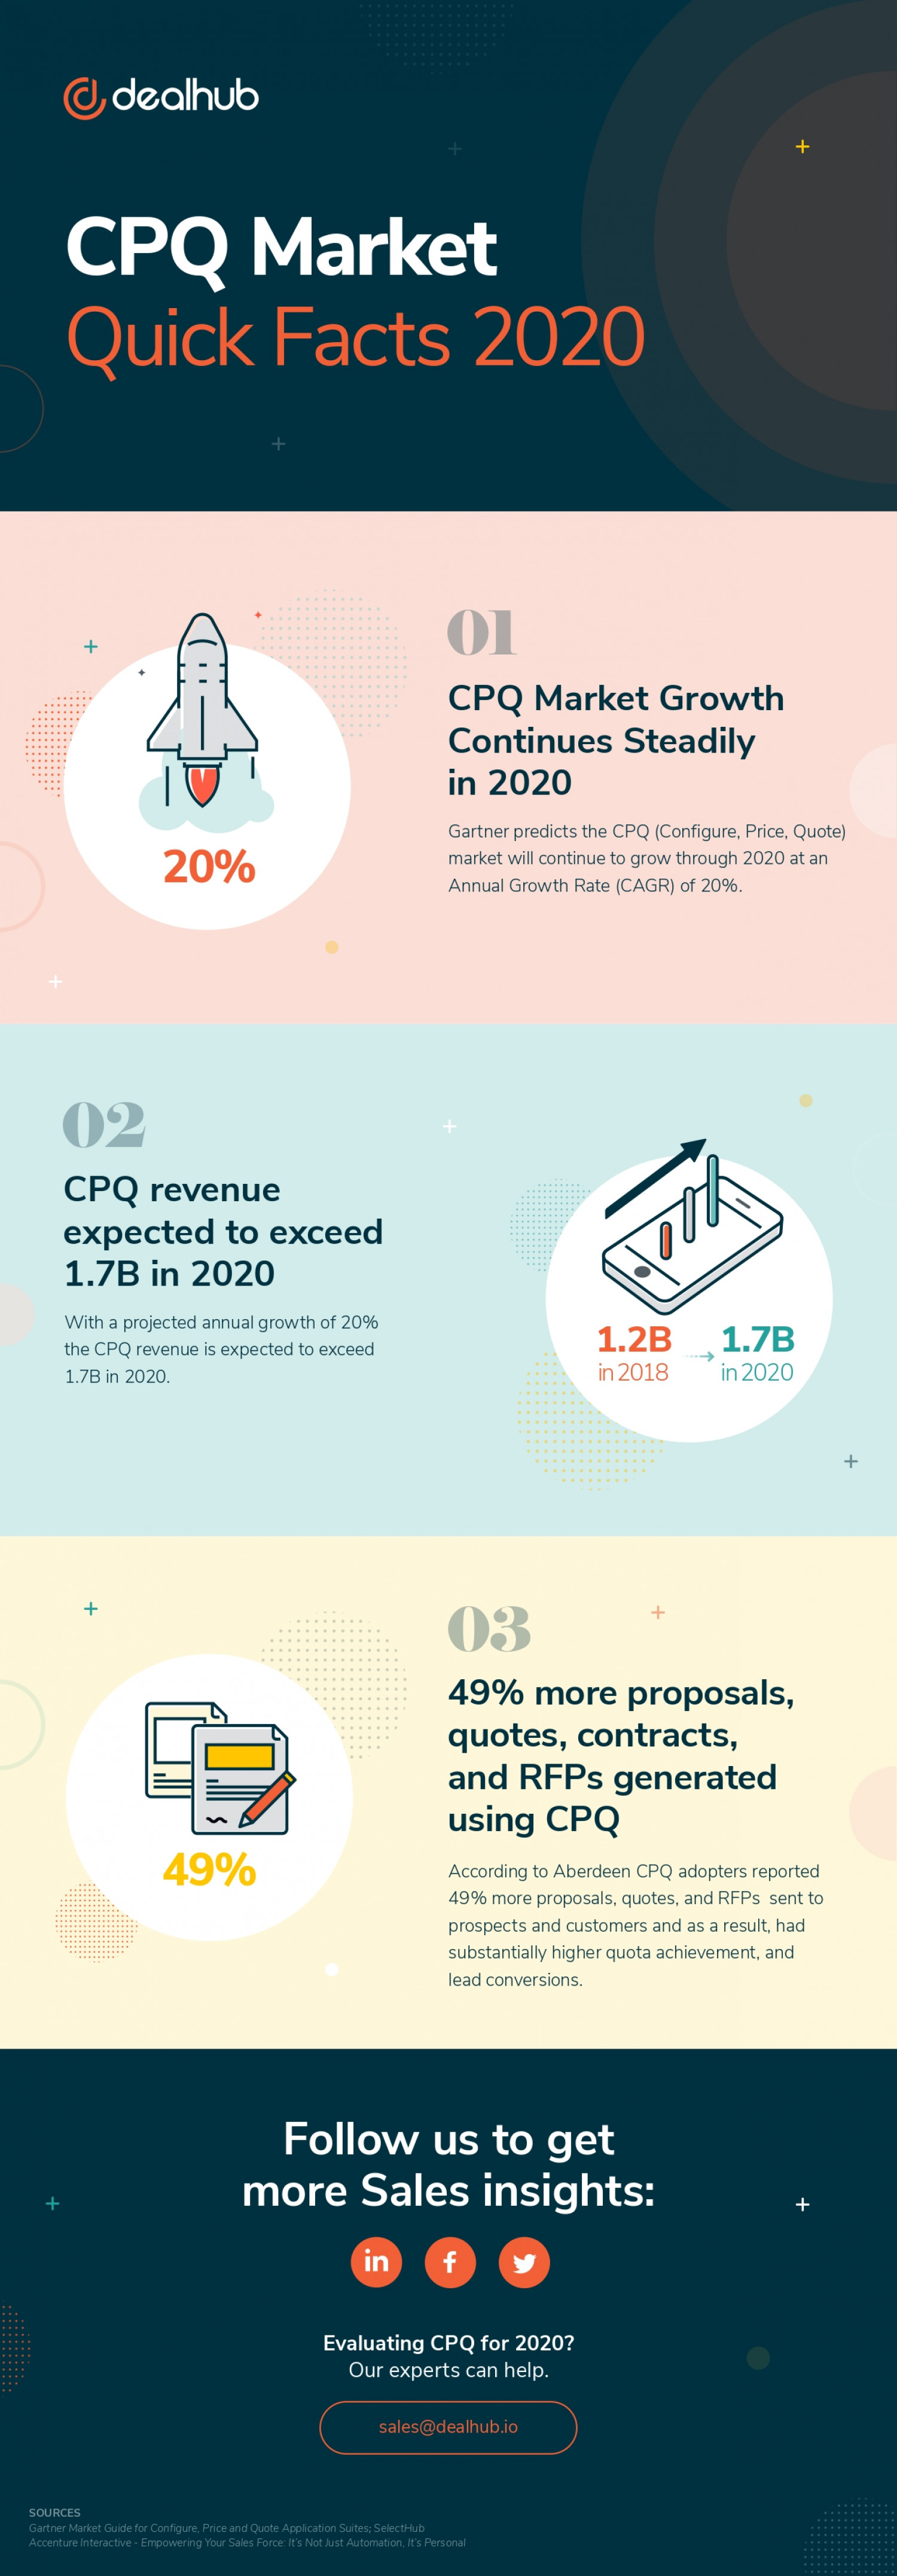 CPQ Market Quick Facts for 2020 Infographic